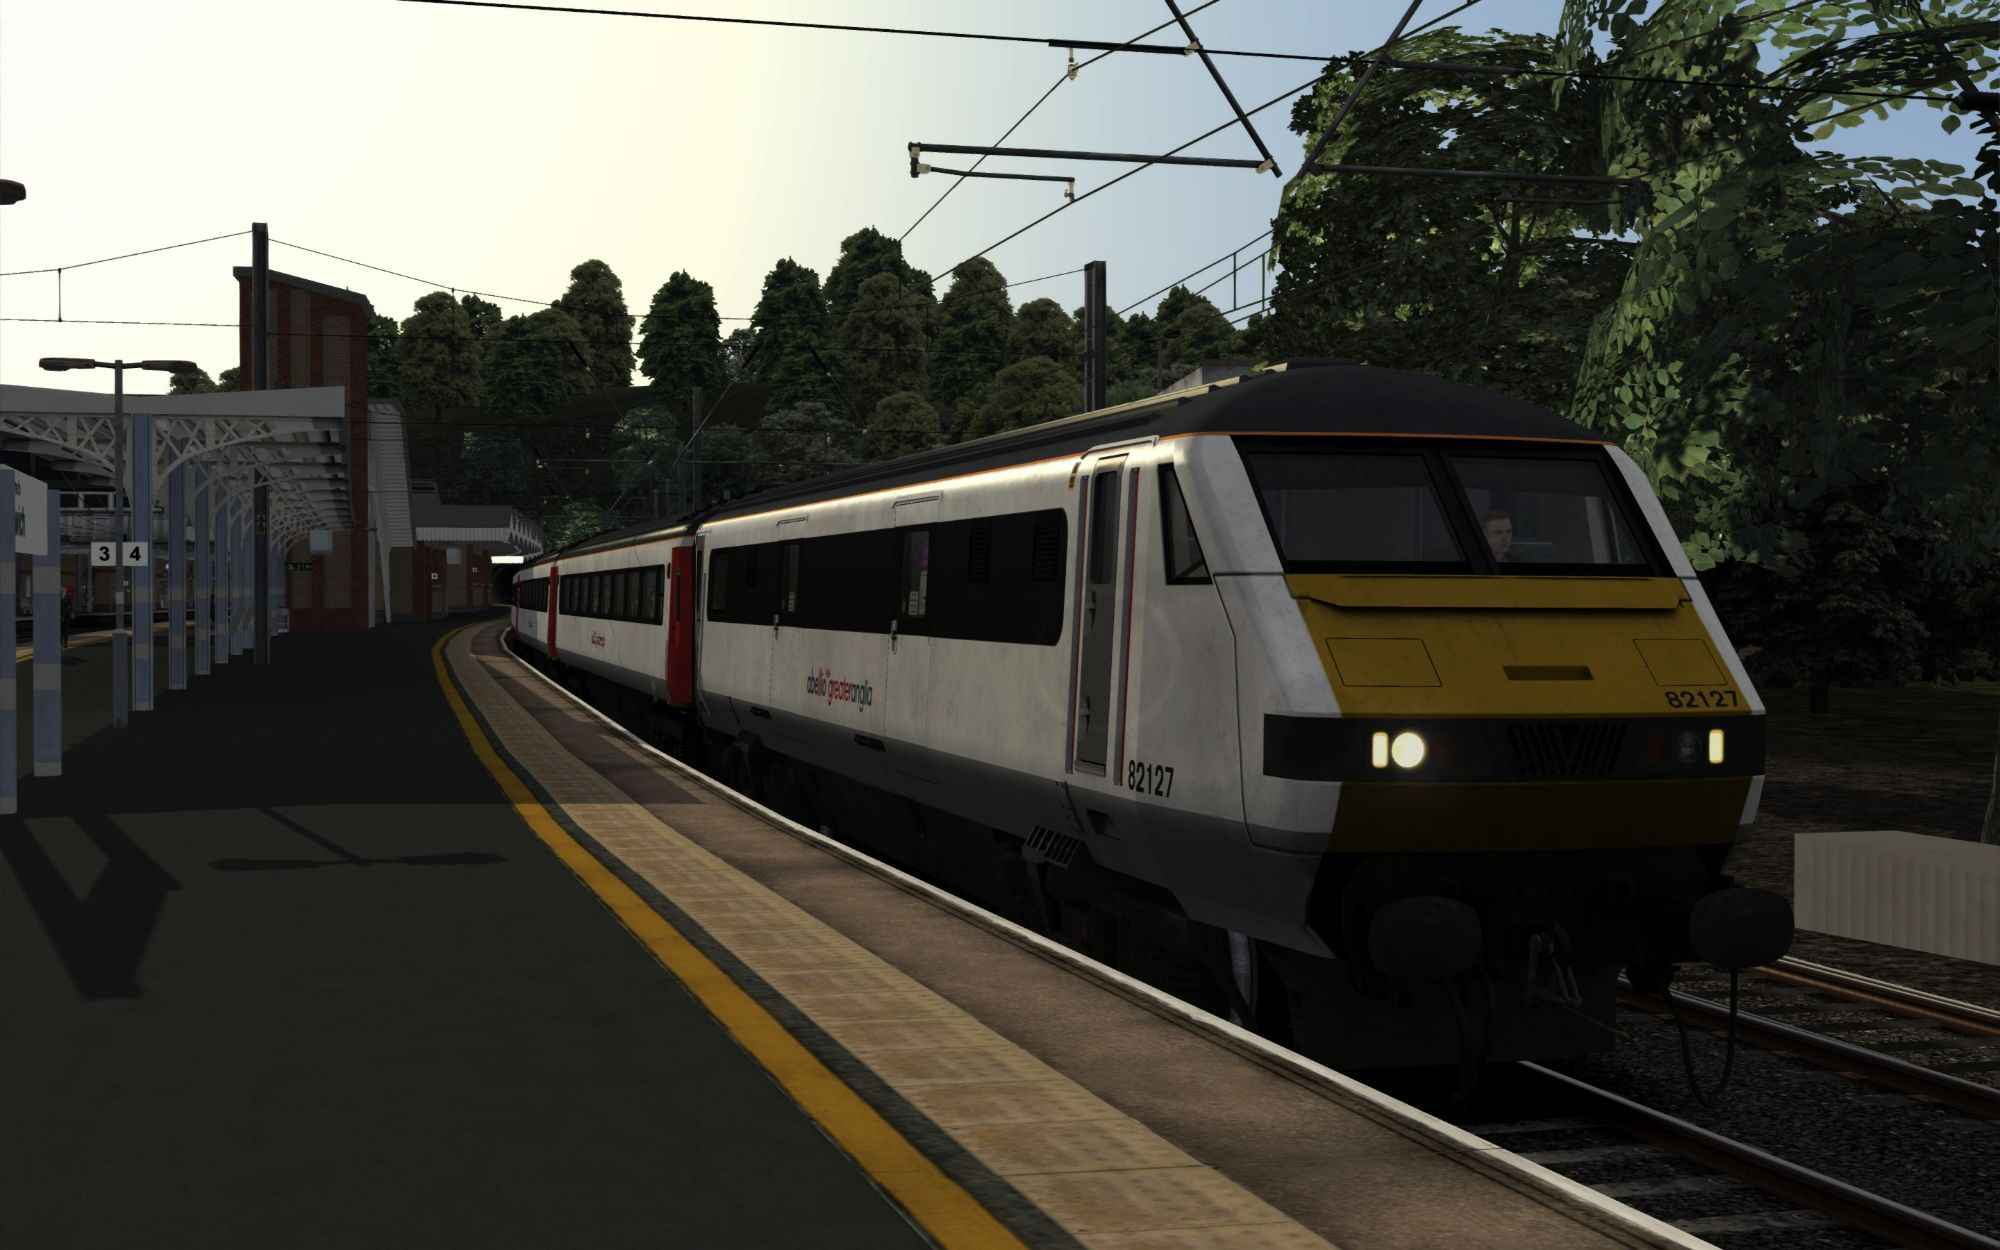 Image showing screenshot of the 1P00 - 0639 Ipswich to Norwich scenario